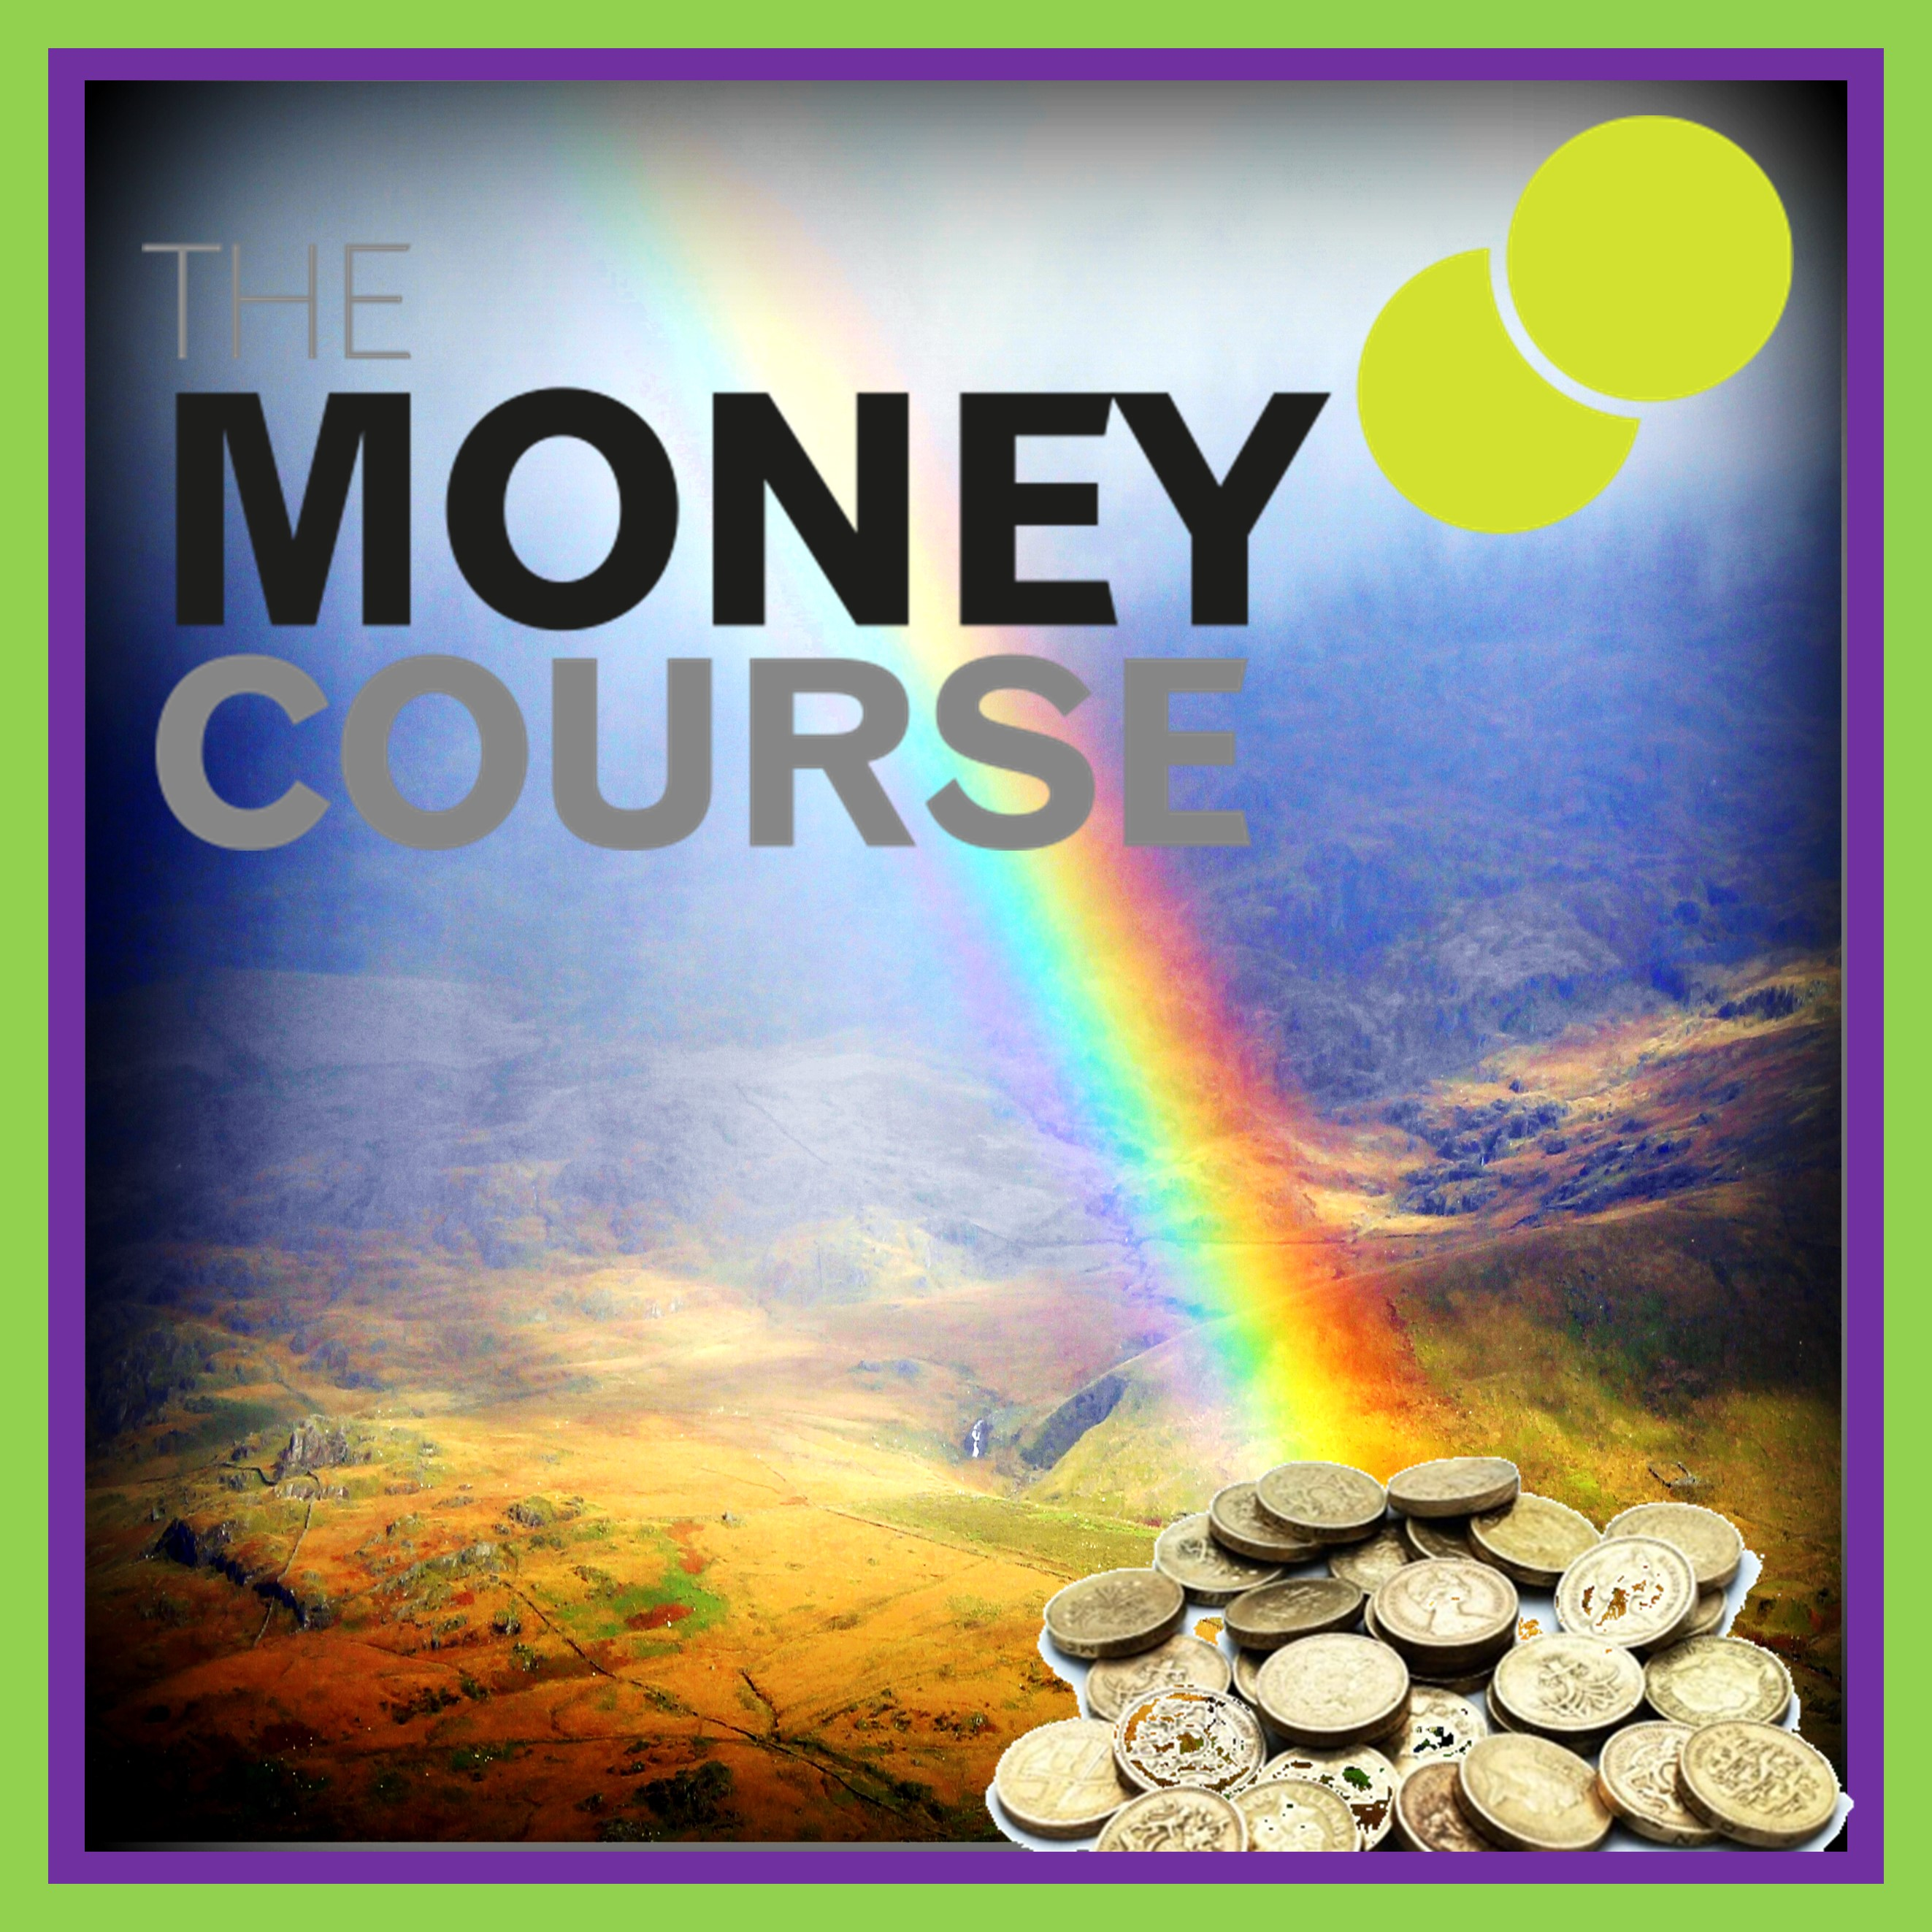 Money Course - square